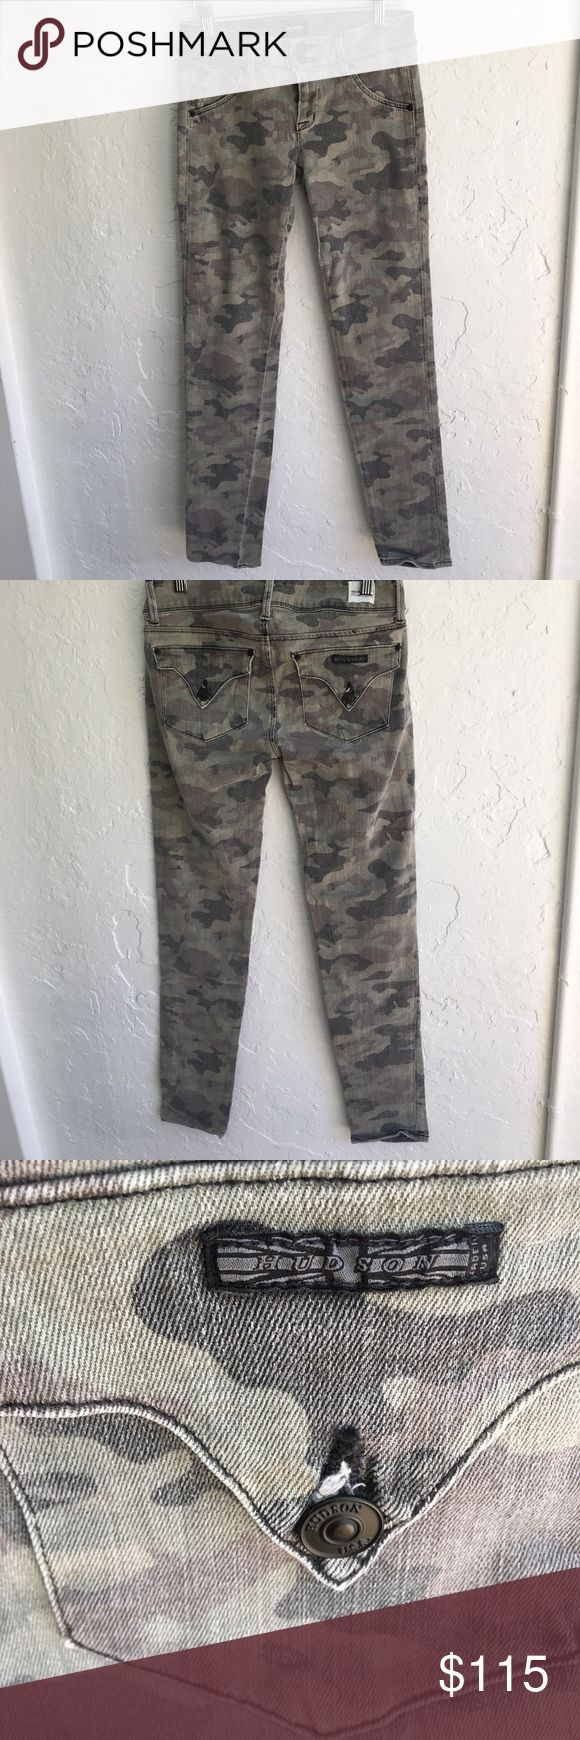 ***gently worn*** Hudson camo skinny jeans!!! These are the most comfortable pants ever! I've worn them several times- in great used condition! Just too small for me now :( Hudson Jeans Jeans Skinny